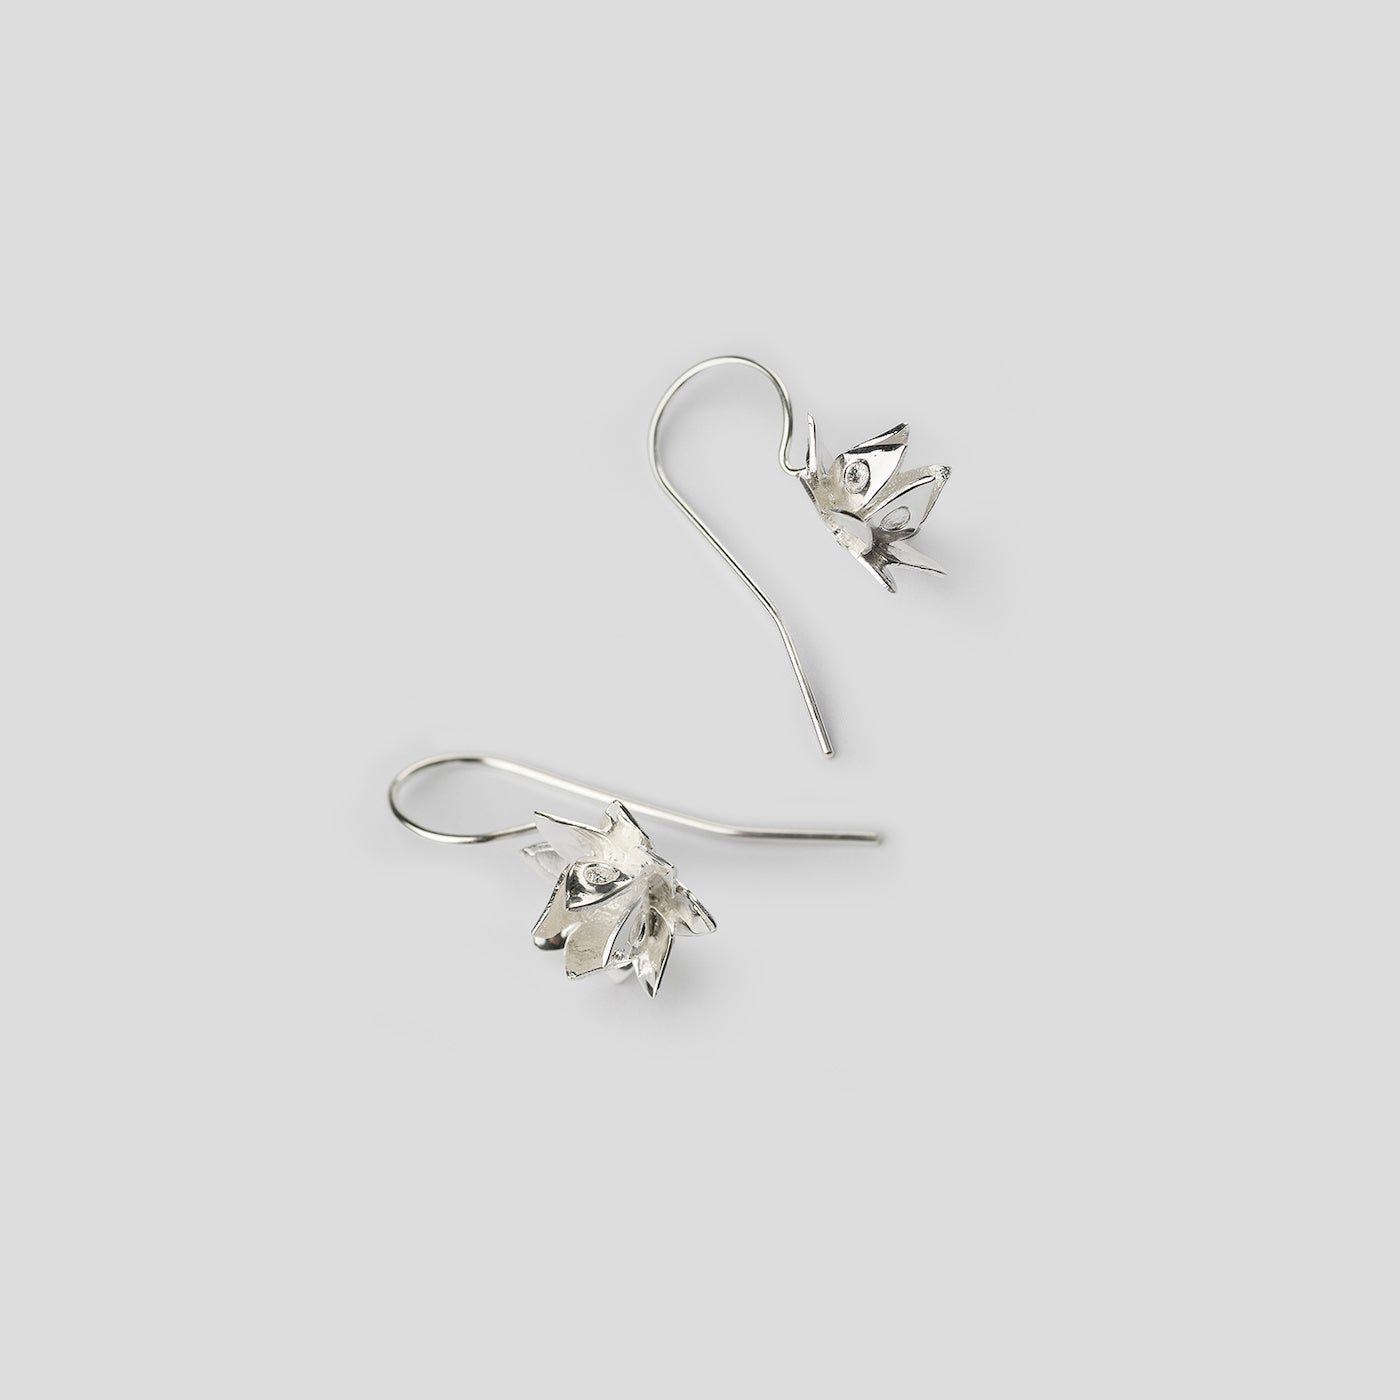 Sterling silver Lotus Hook earrings by Brave Edith on white background